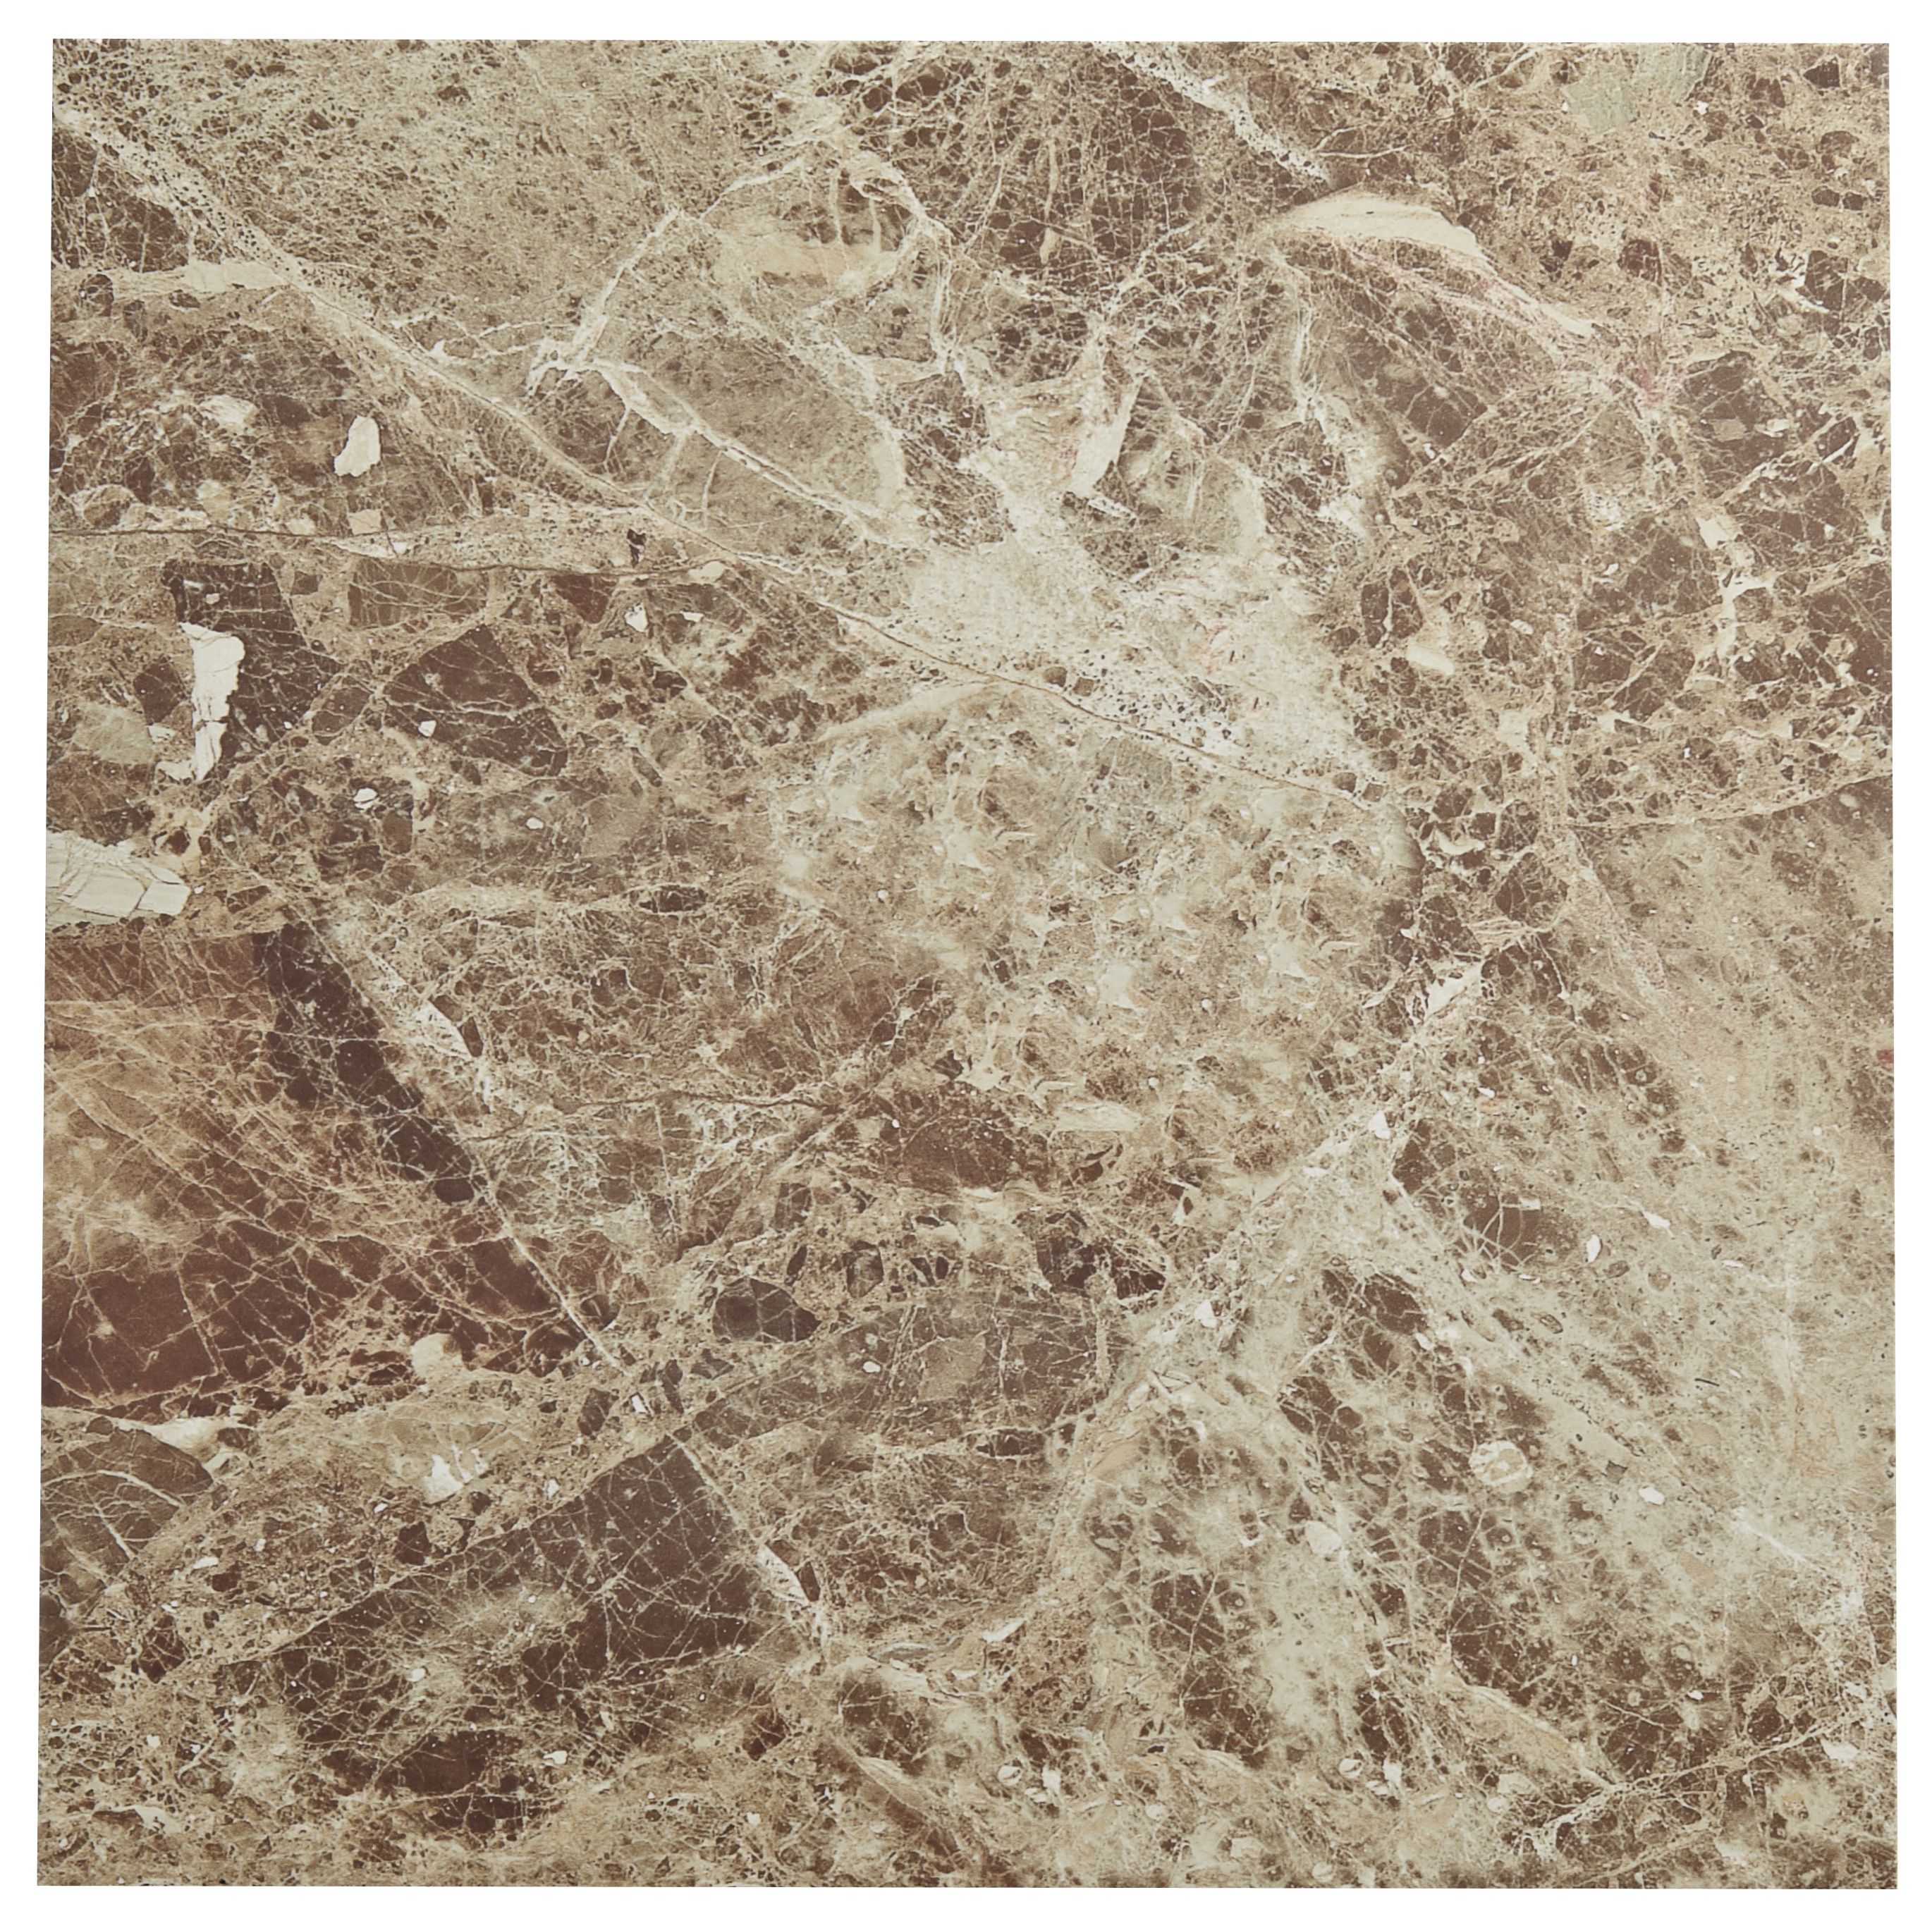 Illusion Emperador Marble Effect Stone Ceramic Floor Tile